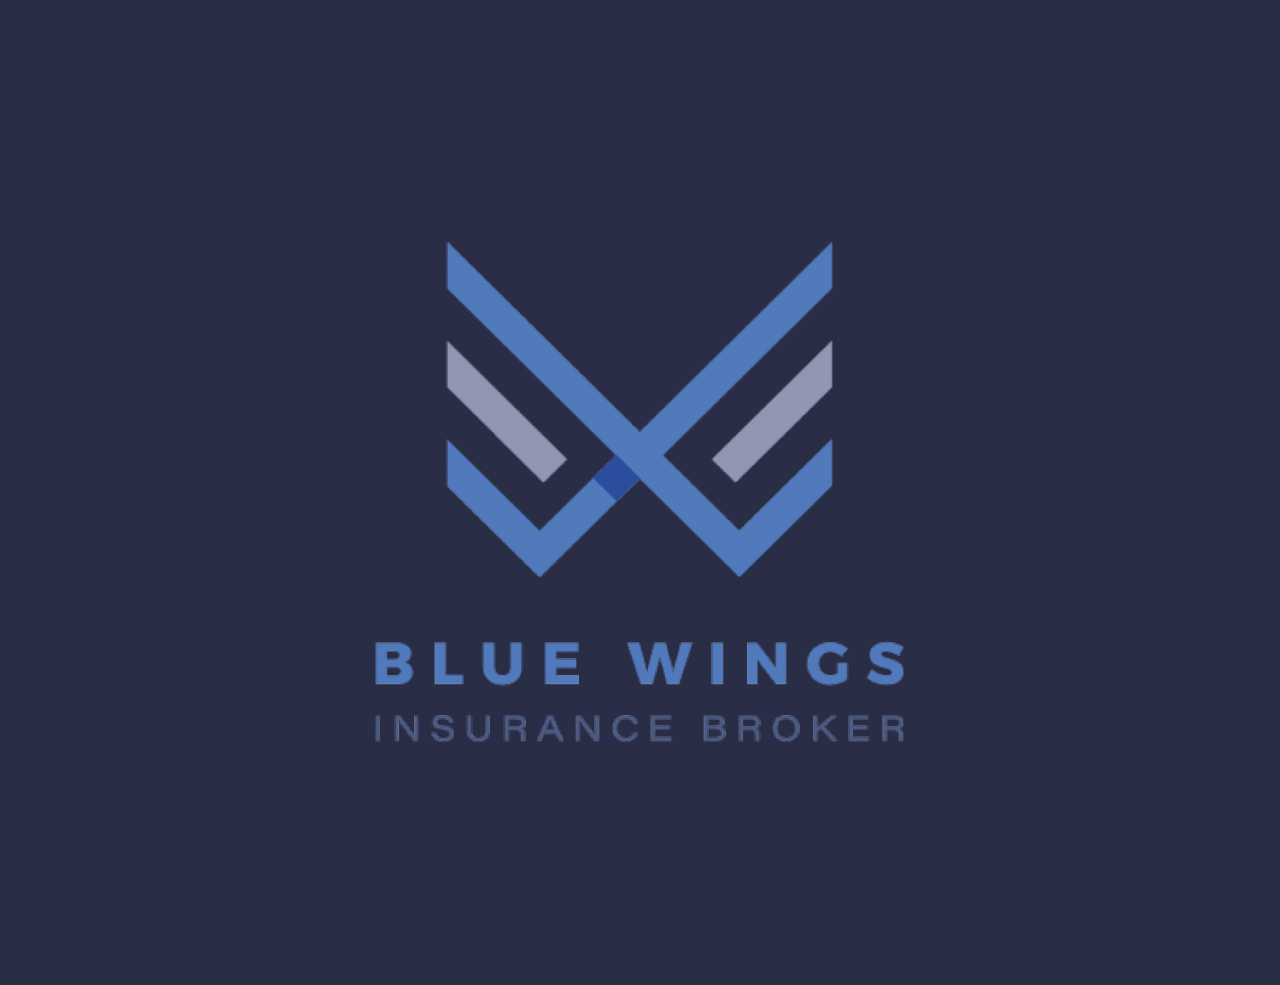 Blue Wings insurance broker